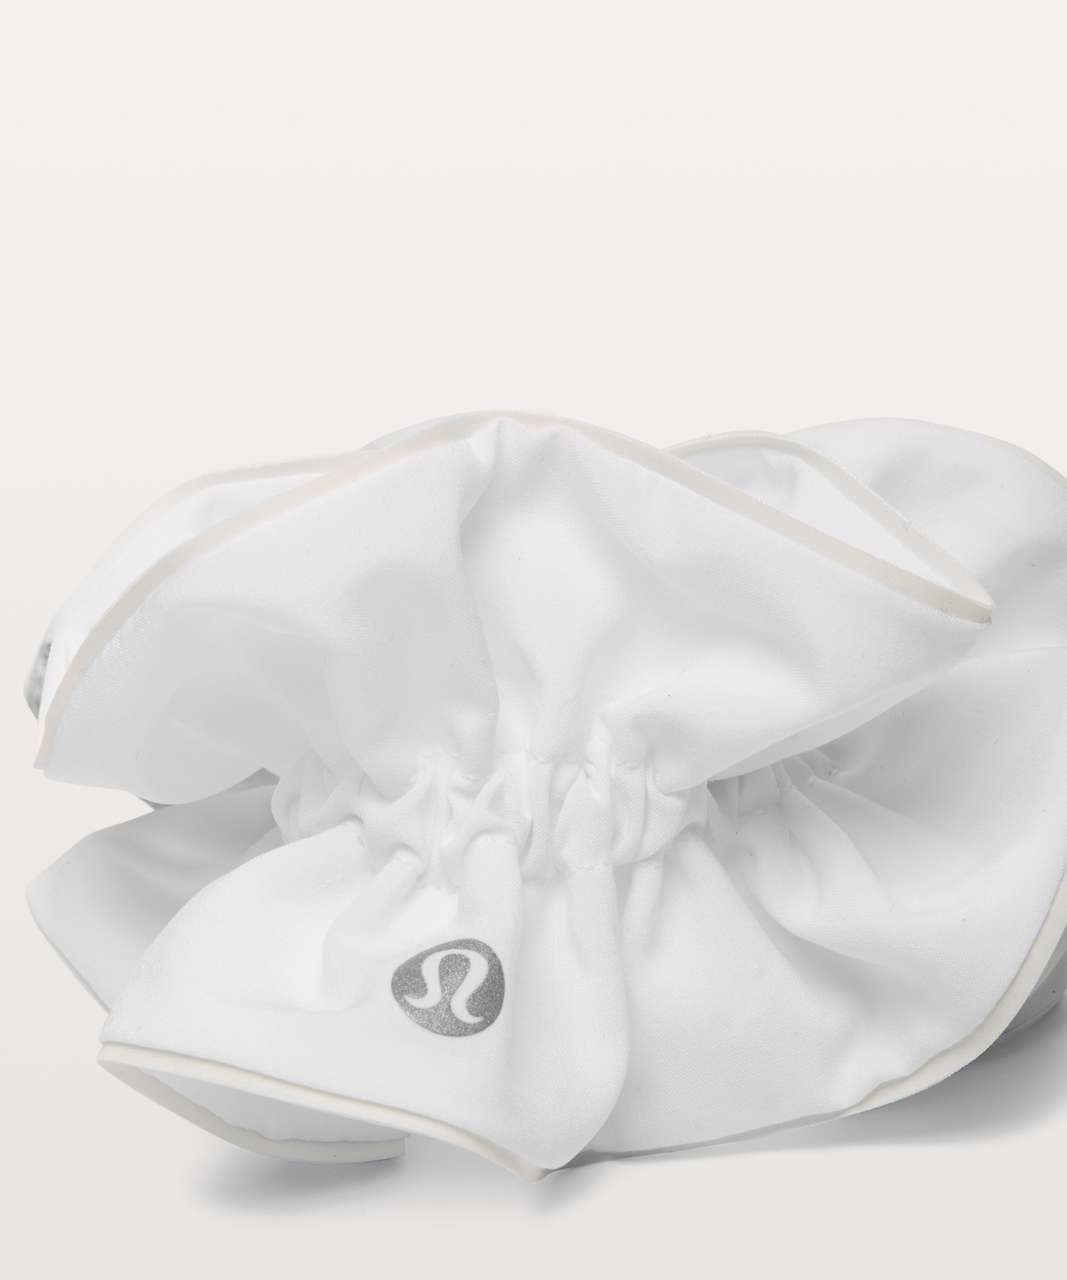 Lululemon Light Locks Scrunchie - White